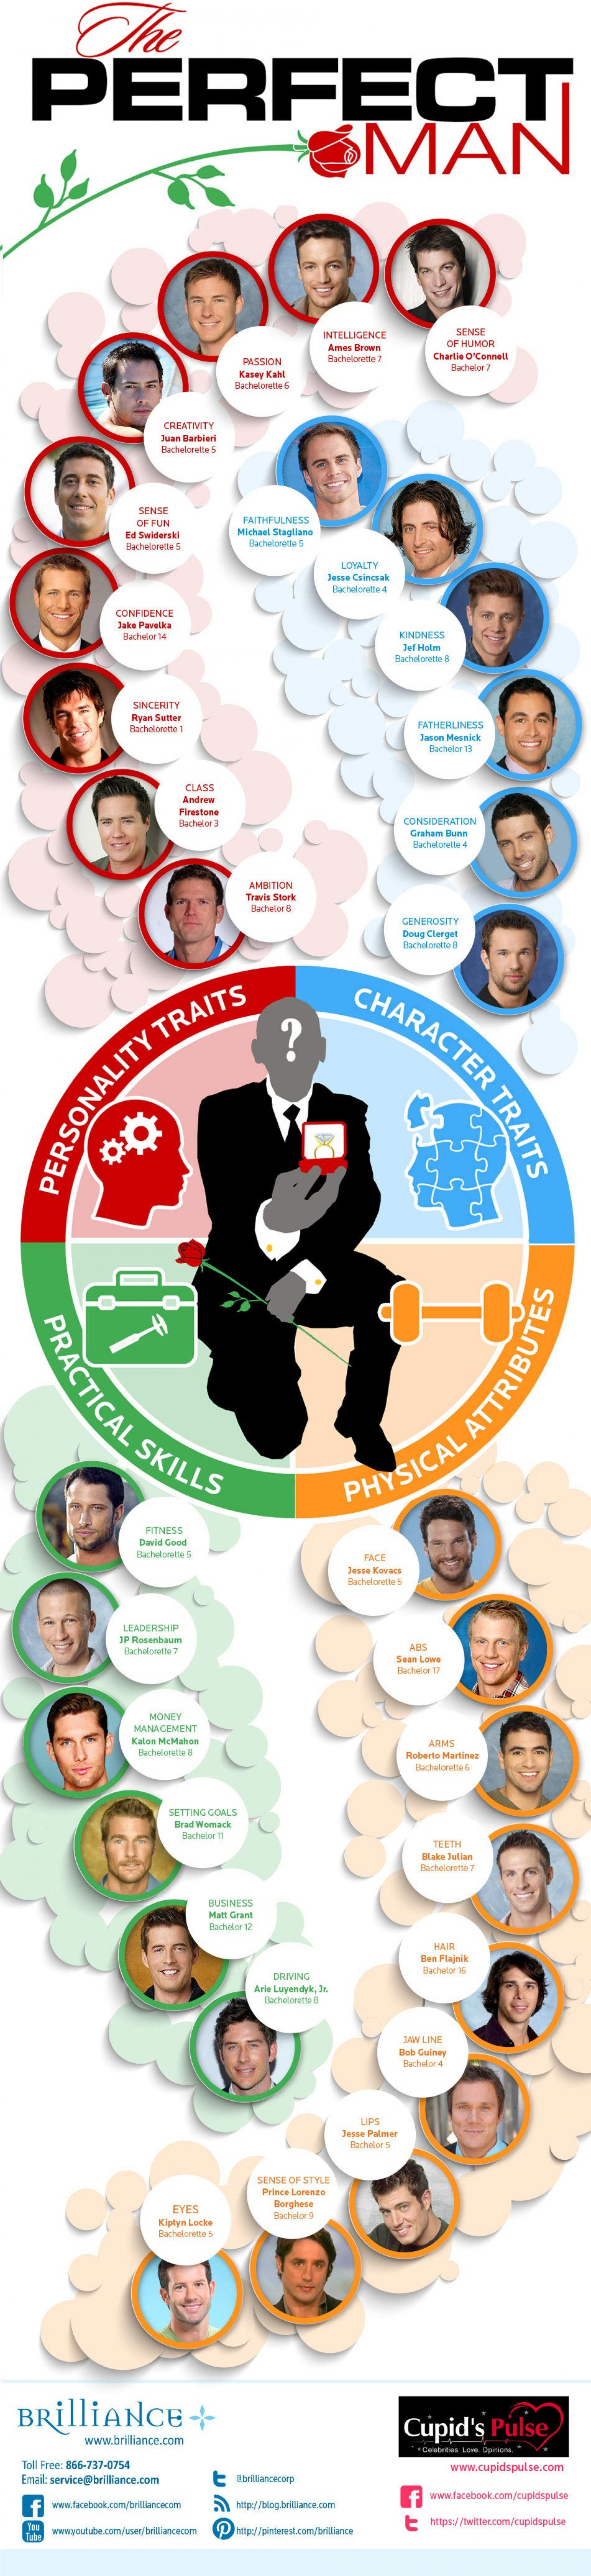 The Perfect Man Infographic